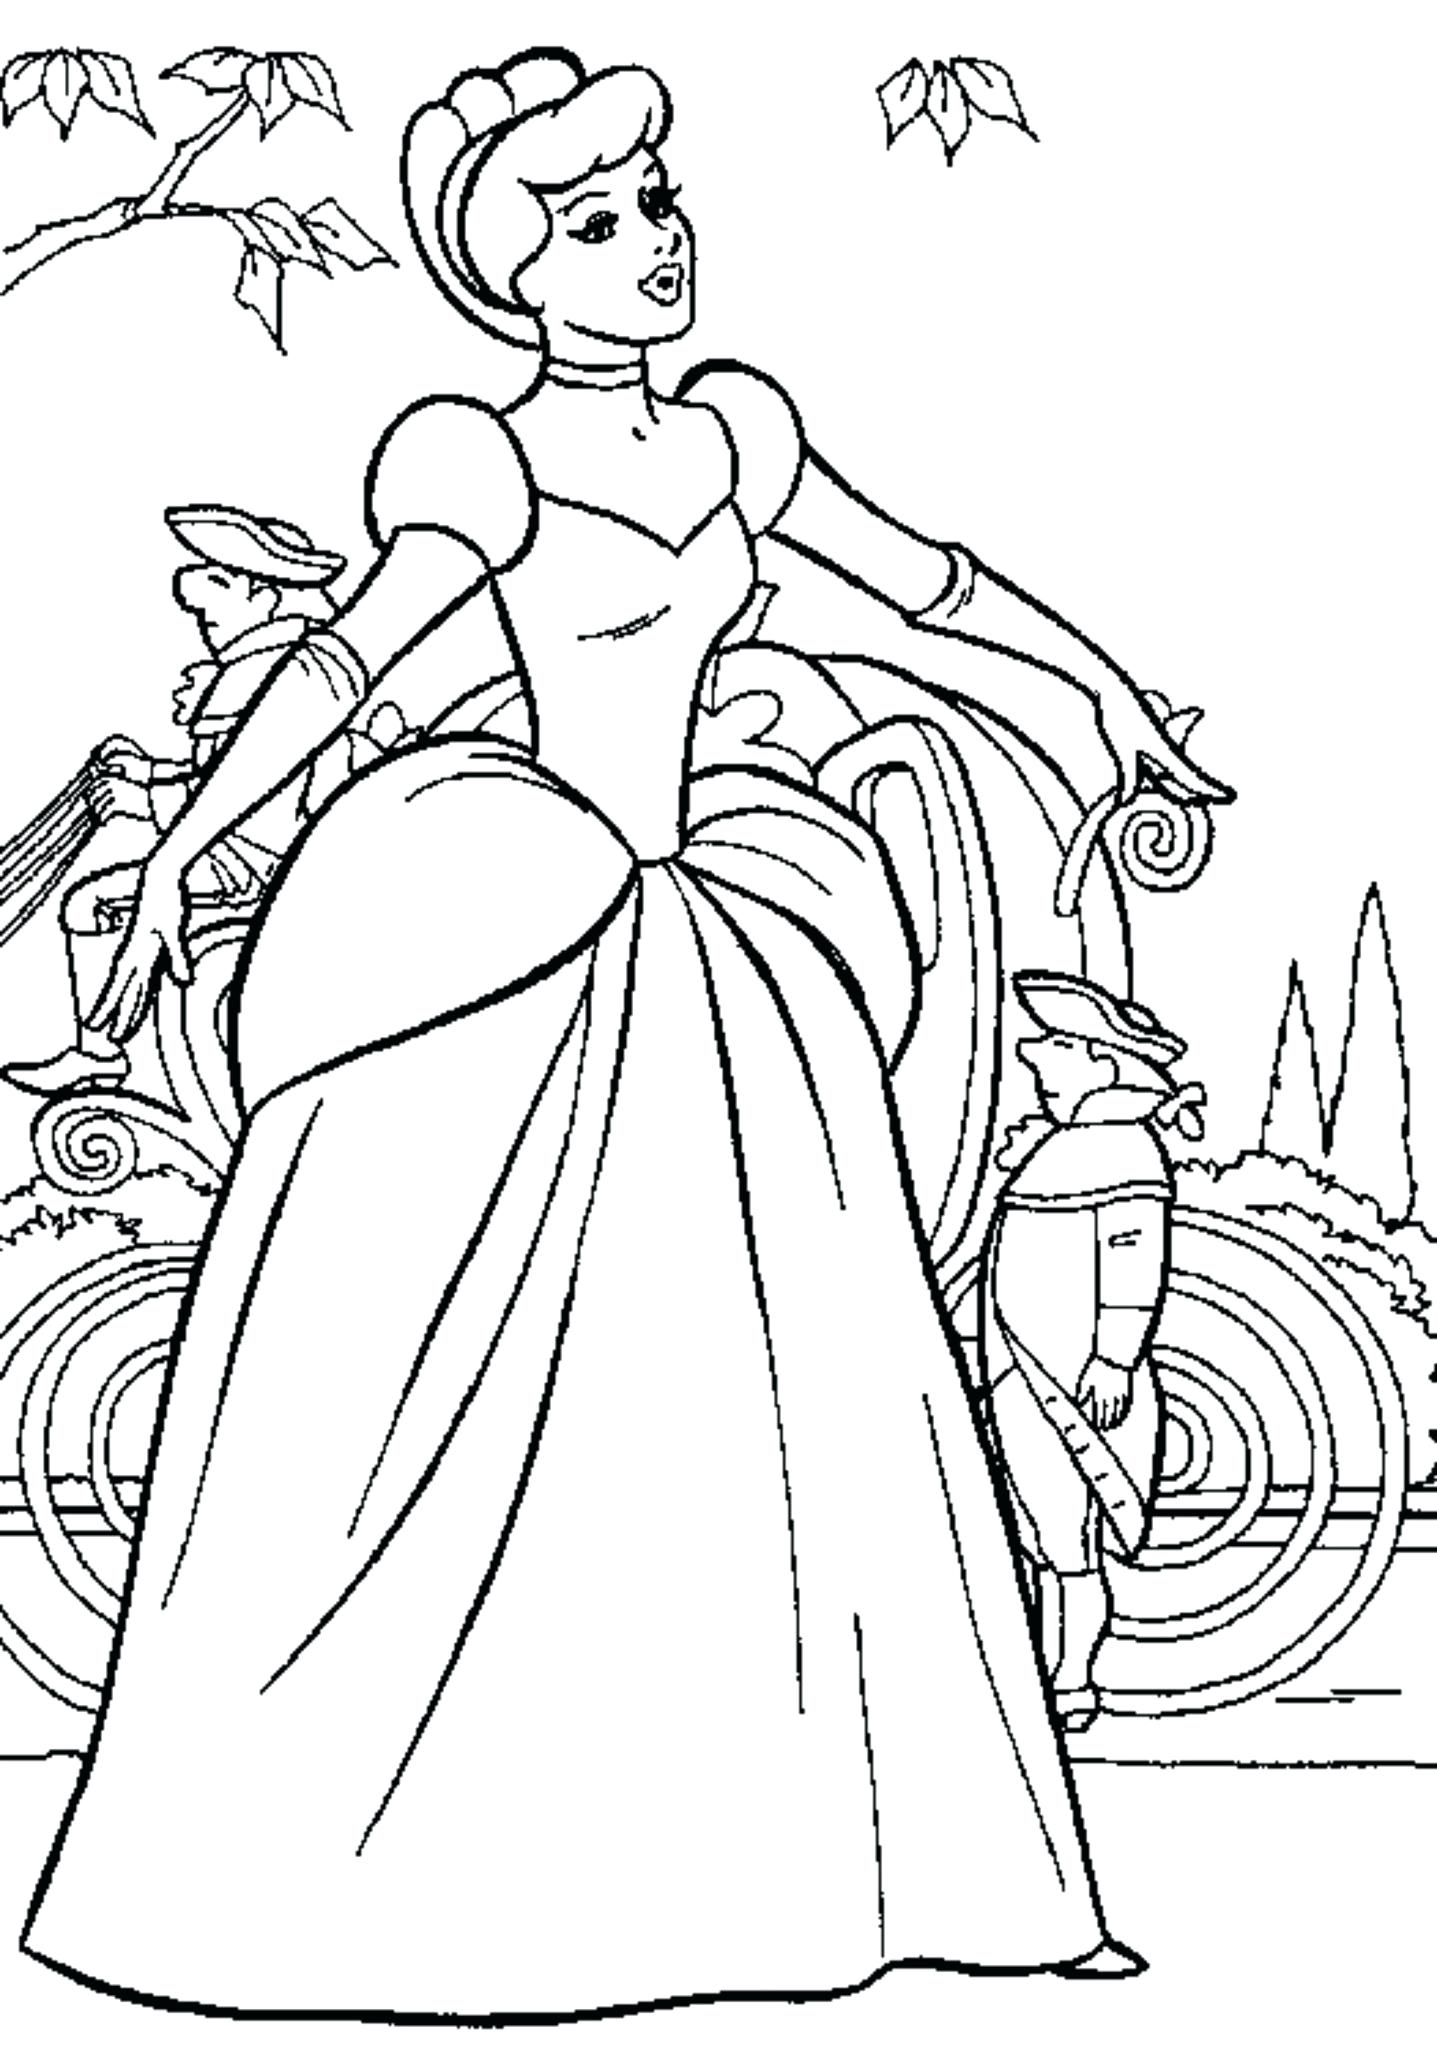 1437x2048 Coloring Pages Remarkable Person Coloring Pages. Lego Ant Man